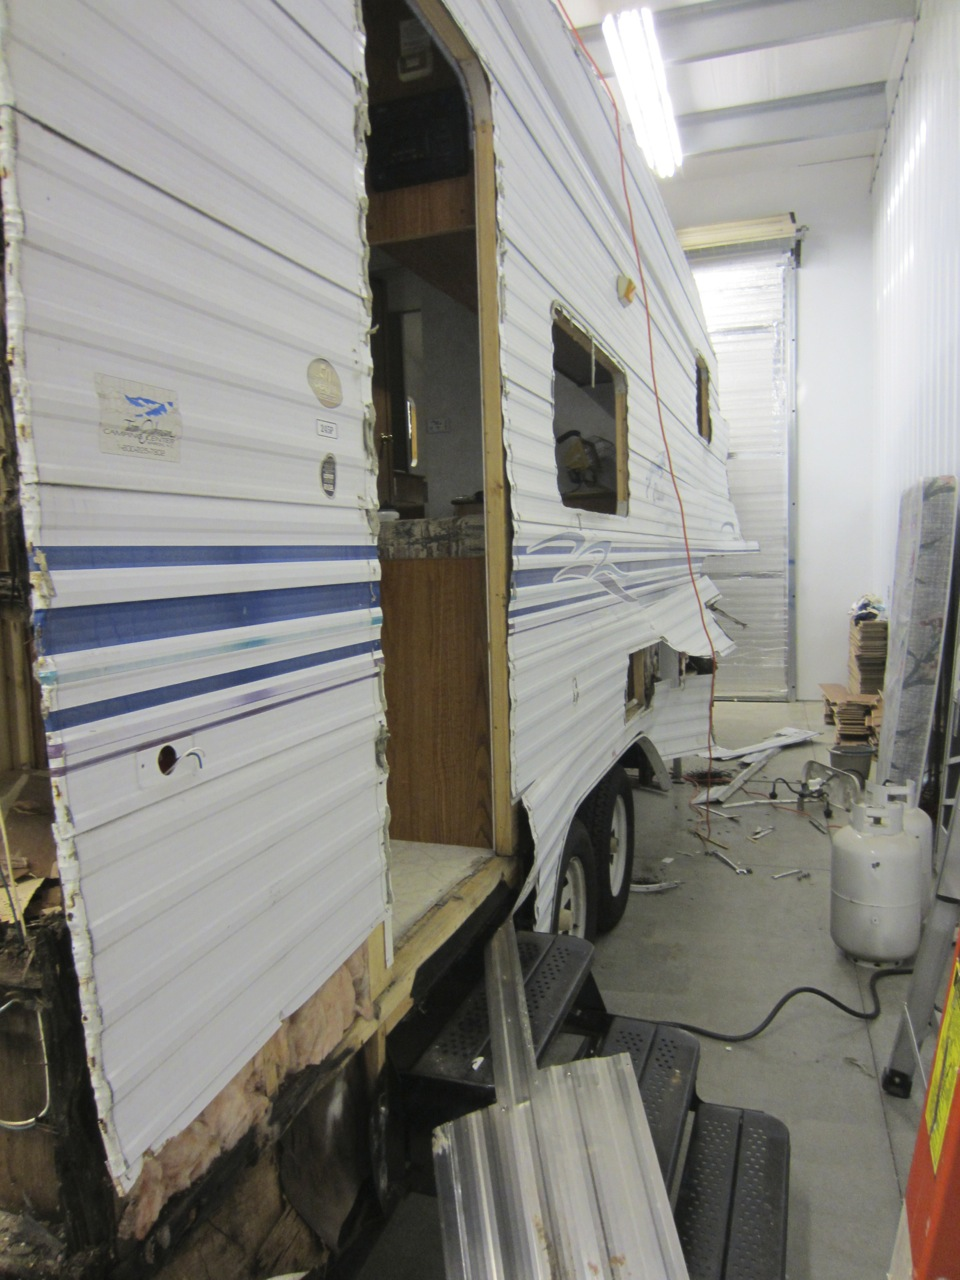 The sides of the RV come off.